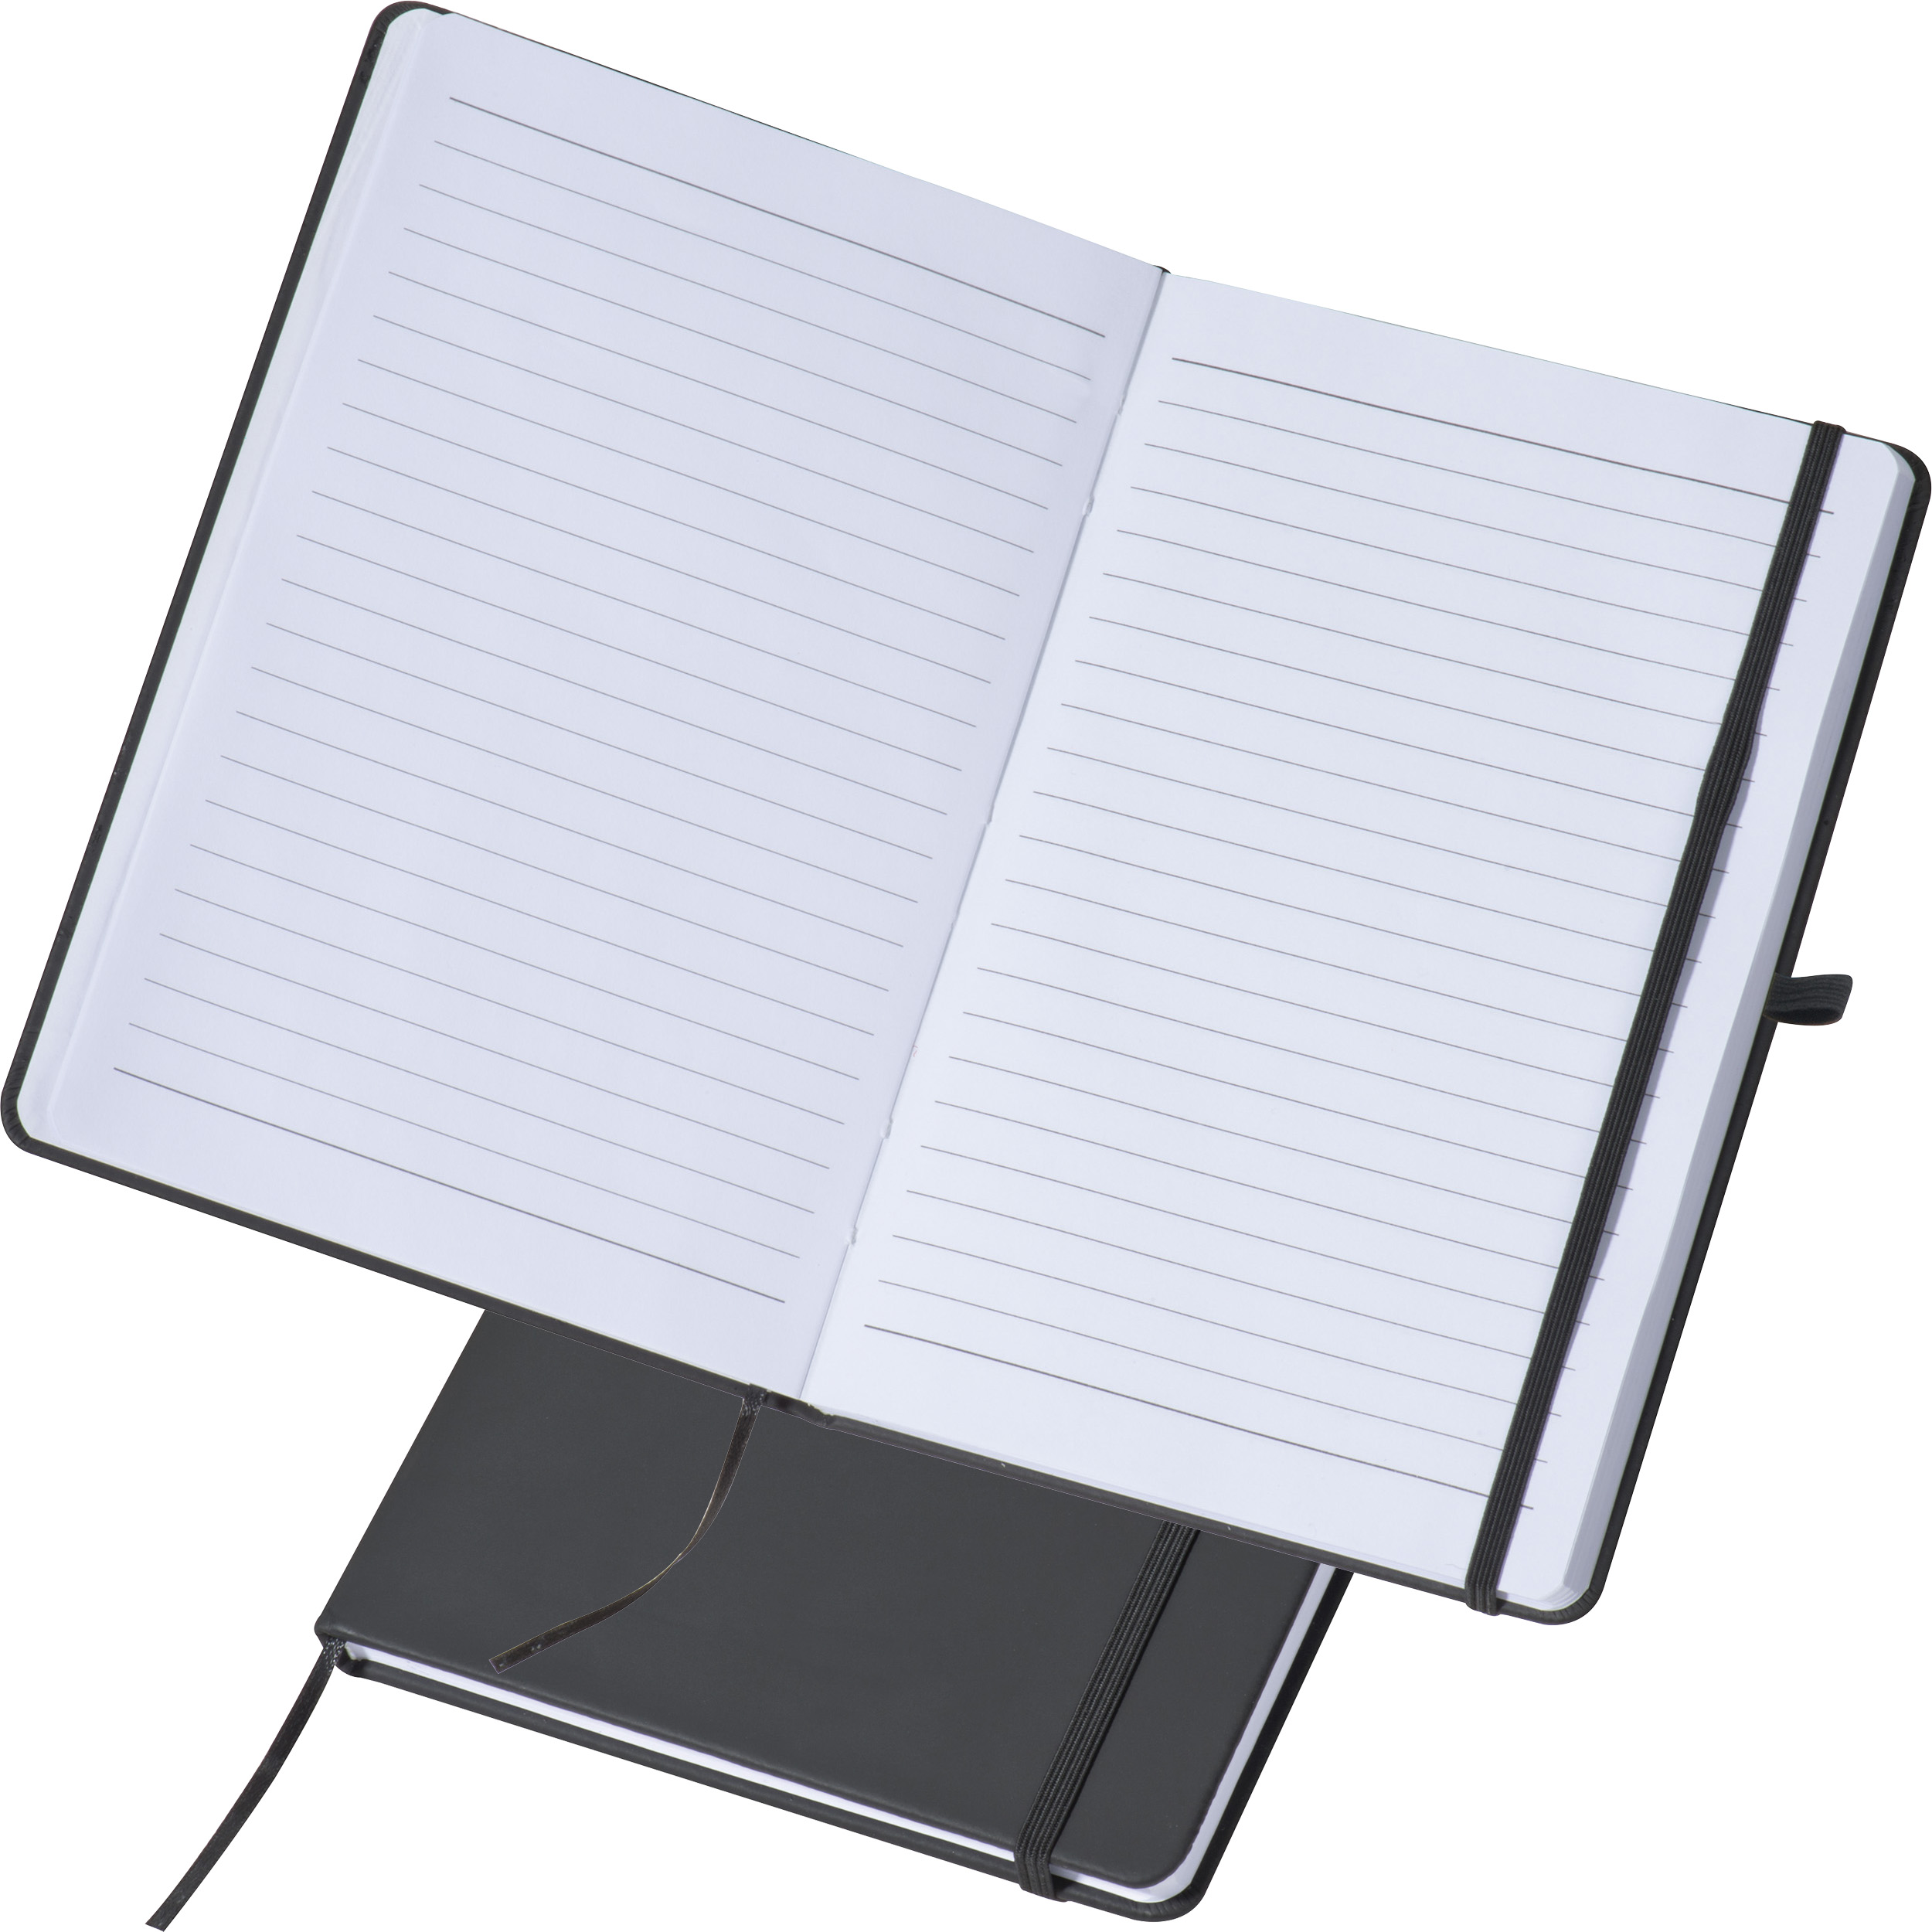 A5 notebook with lined pages